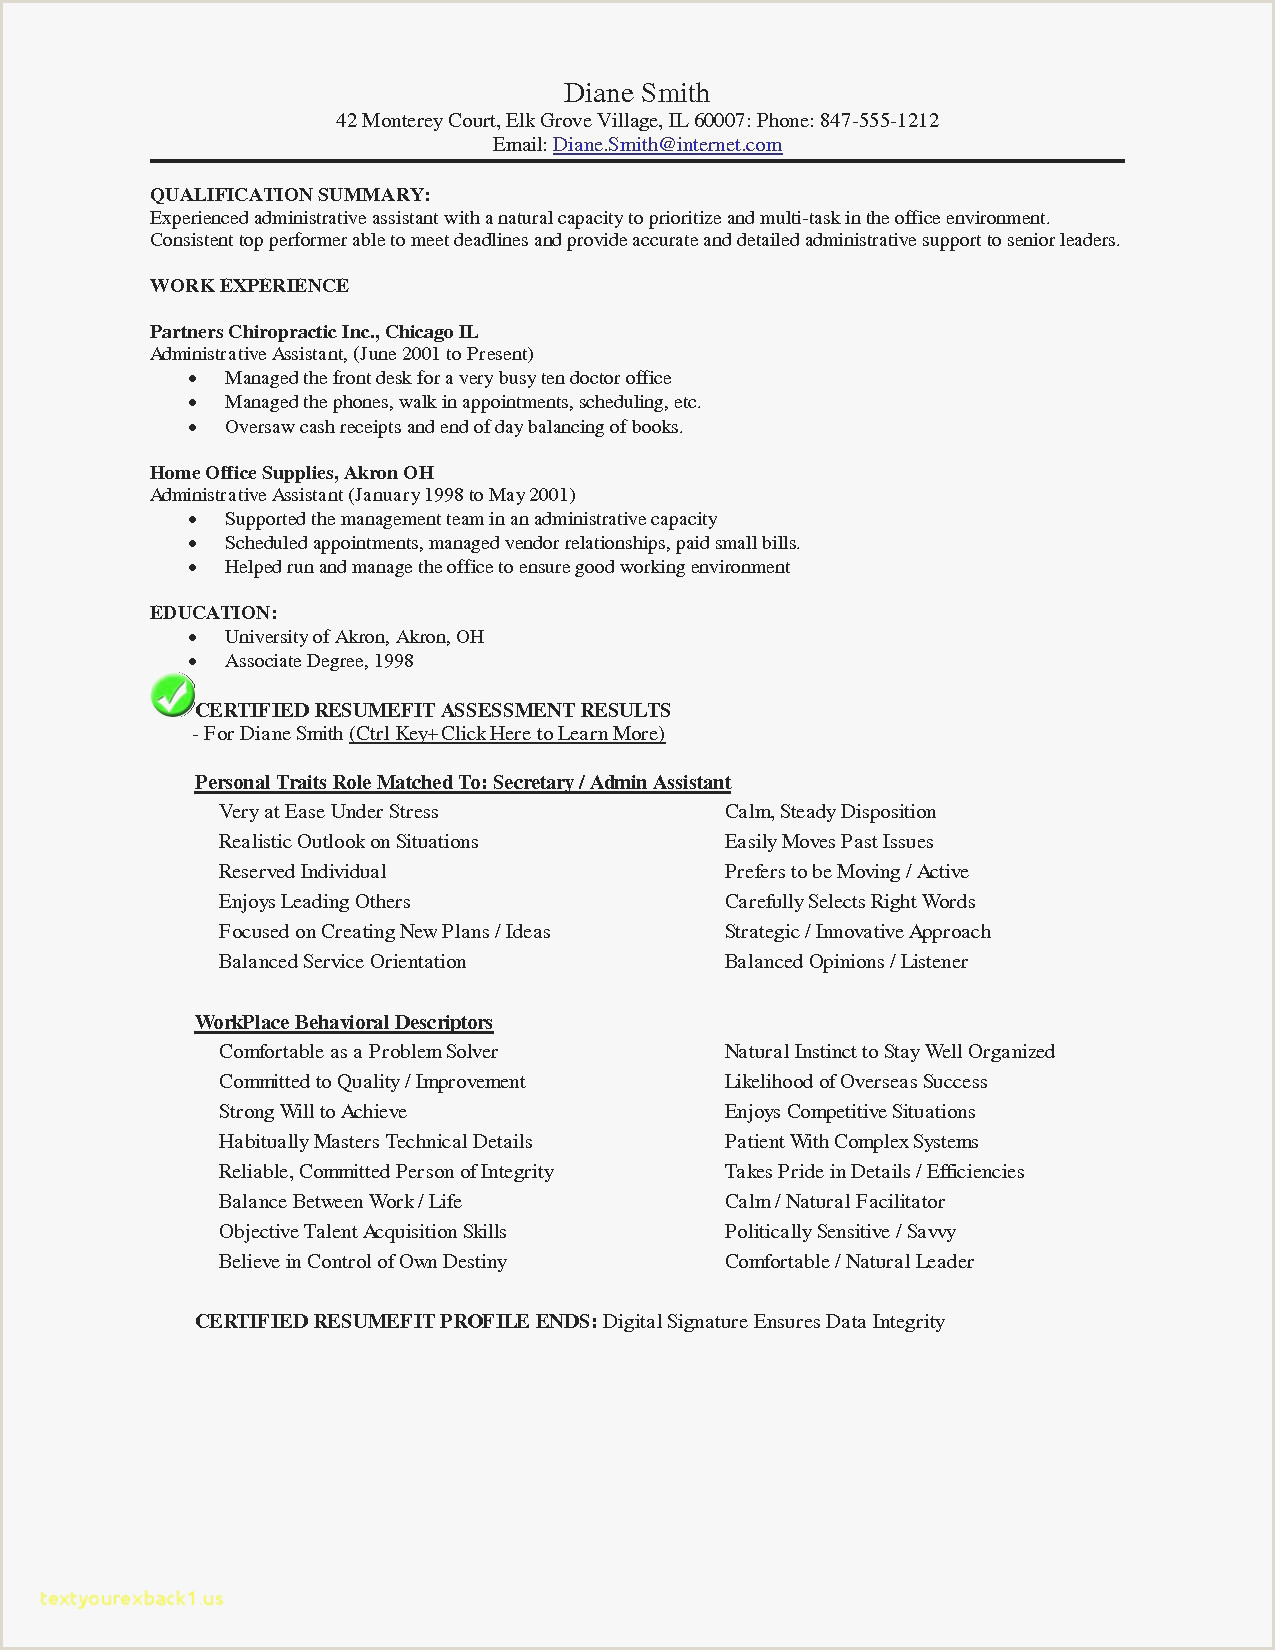 Hairstyles Free Creative Resume Templates 40 Inspiration